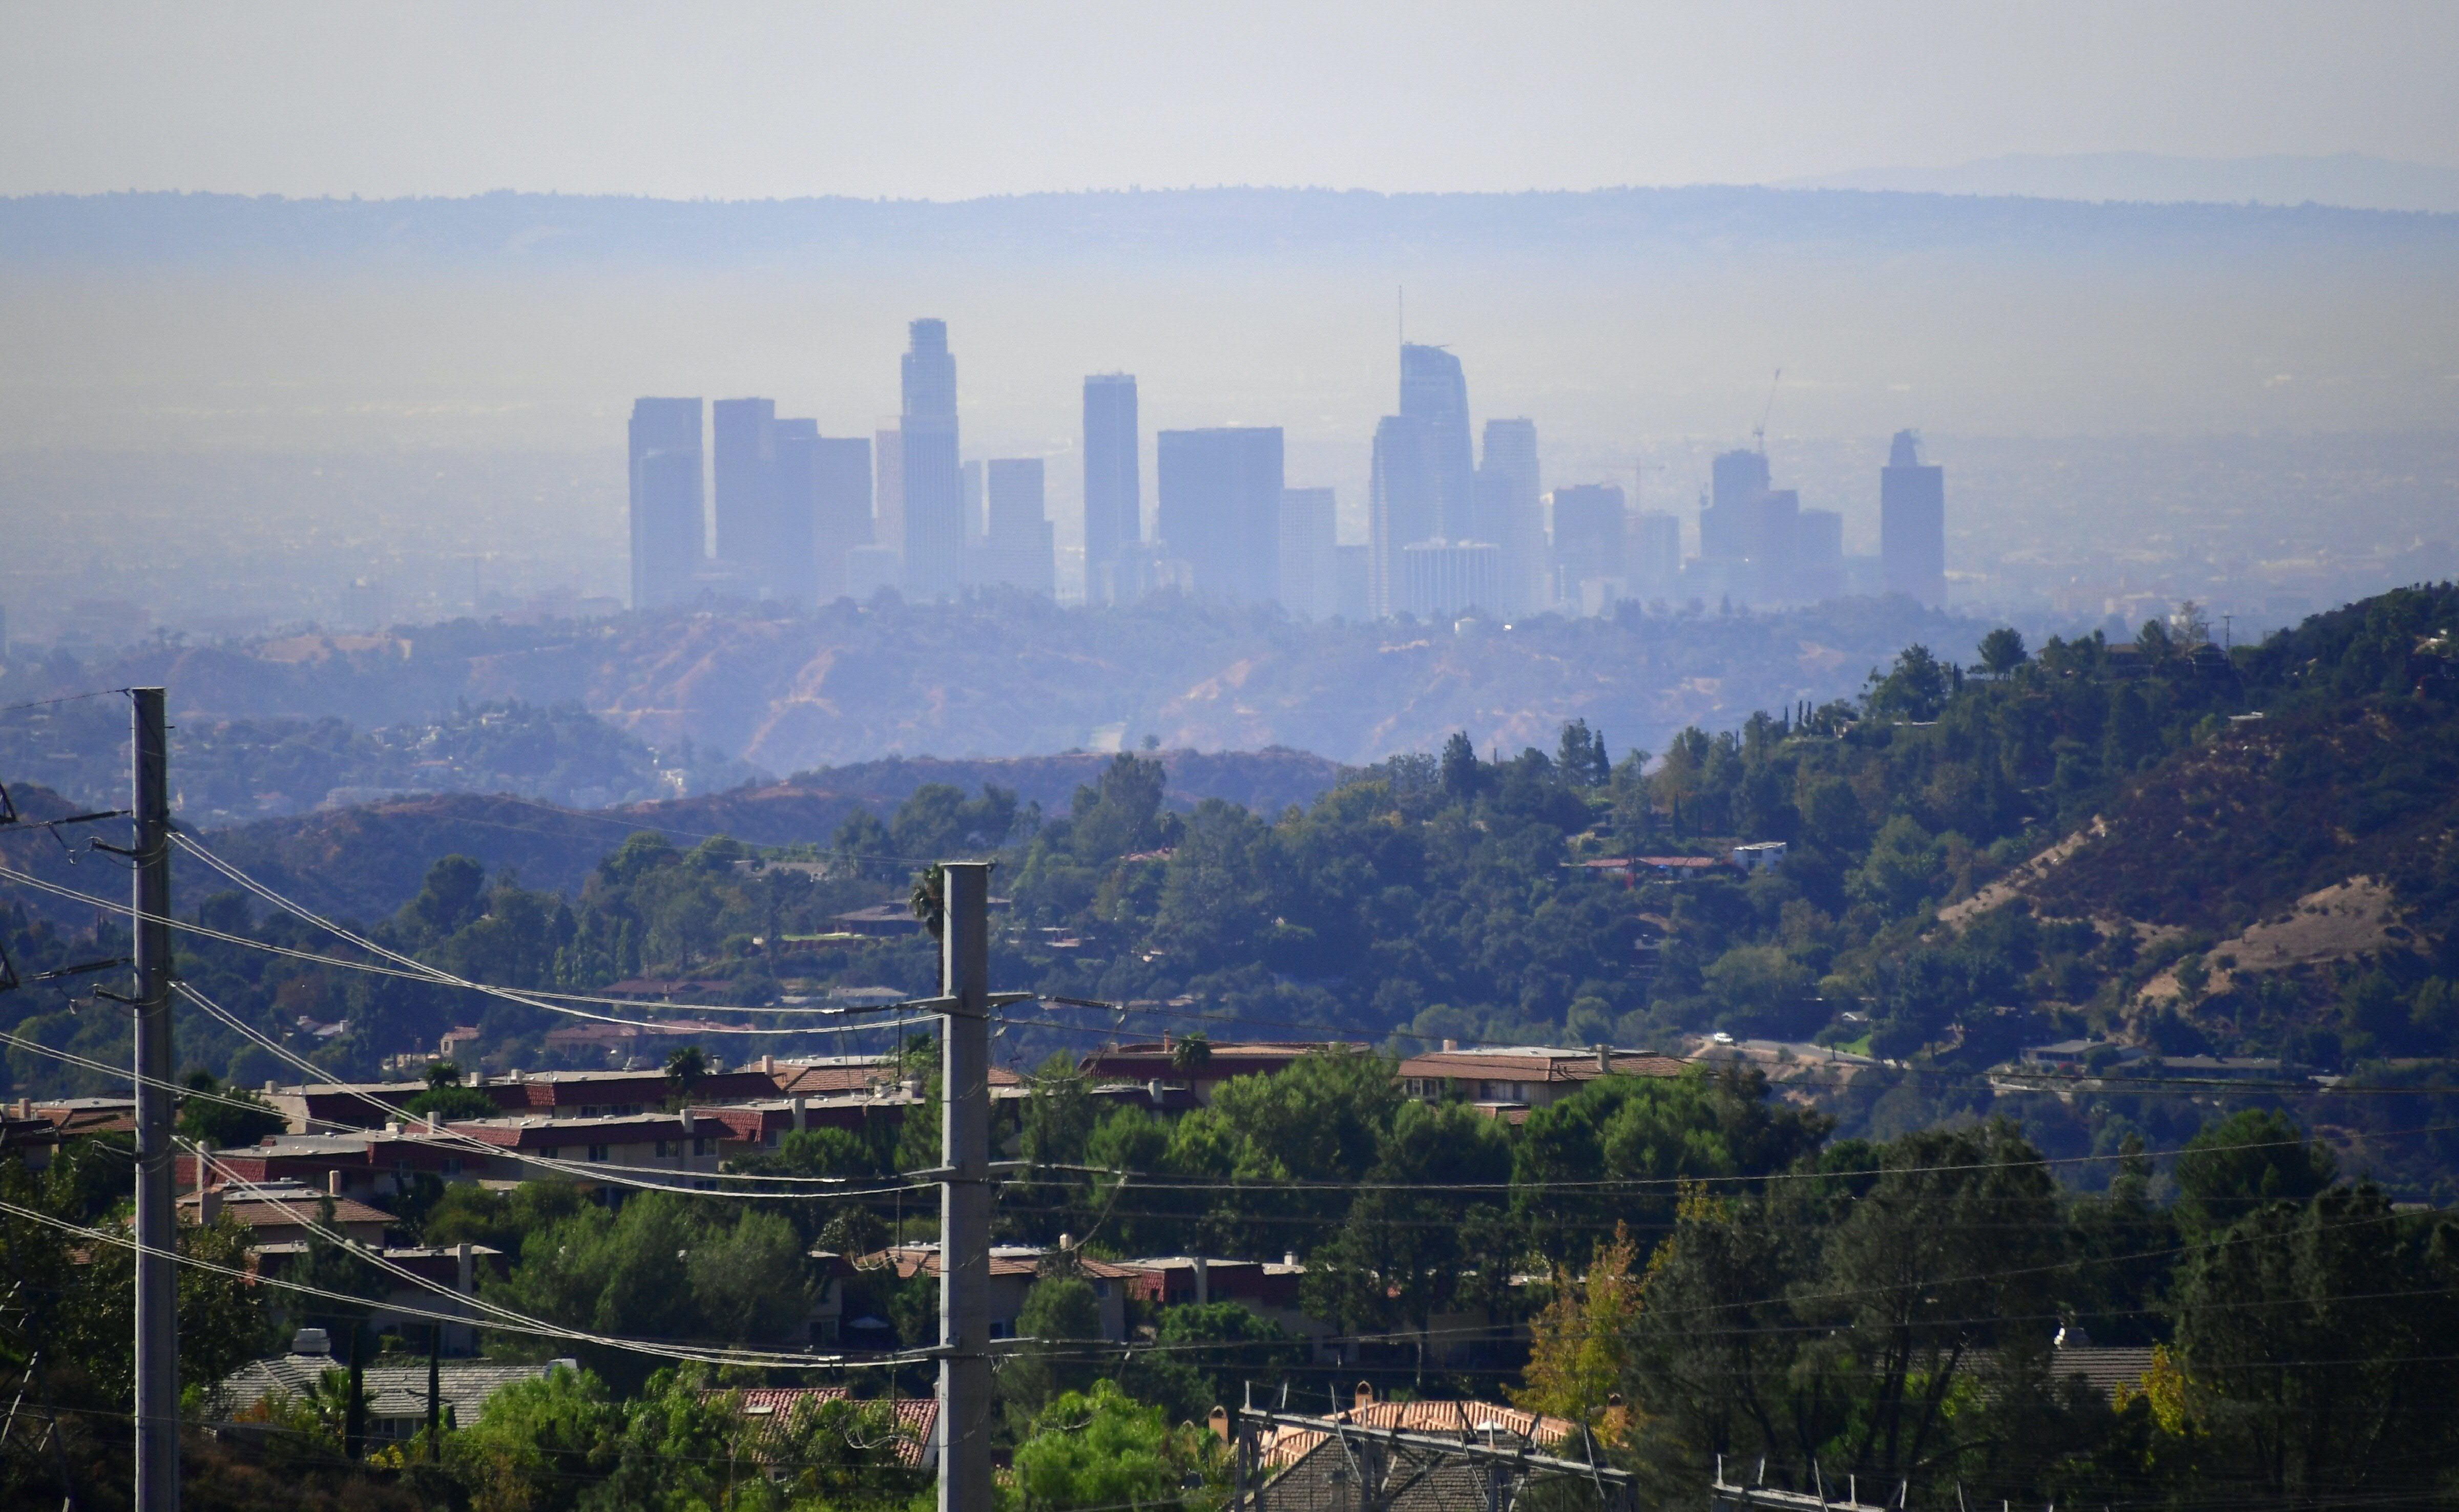 A layer of pollution can be seen hovering over Los Angeles, California on October 17, 2017, where even though air quality has